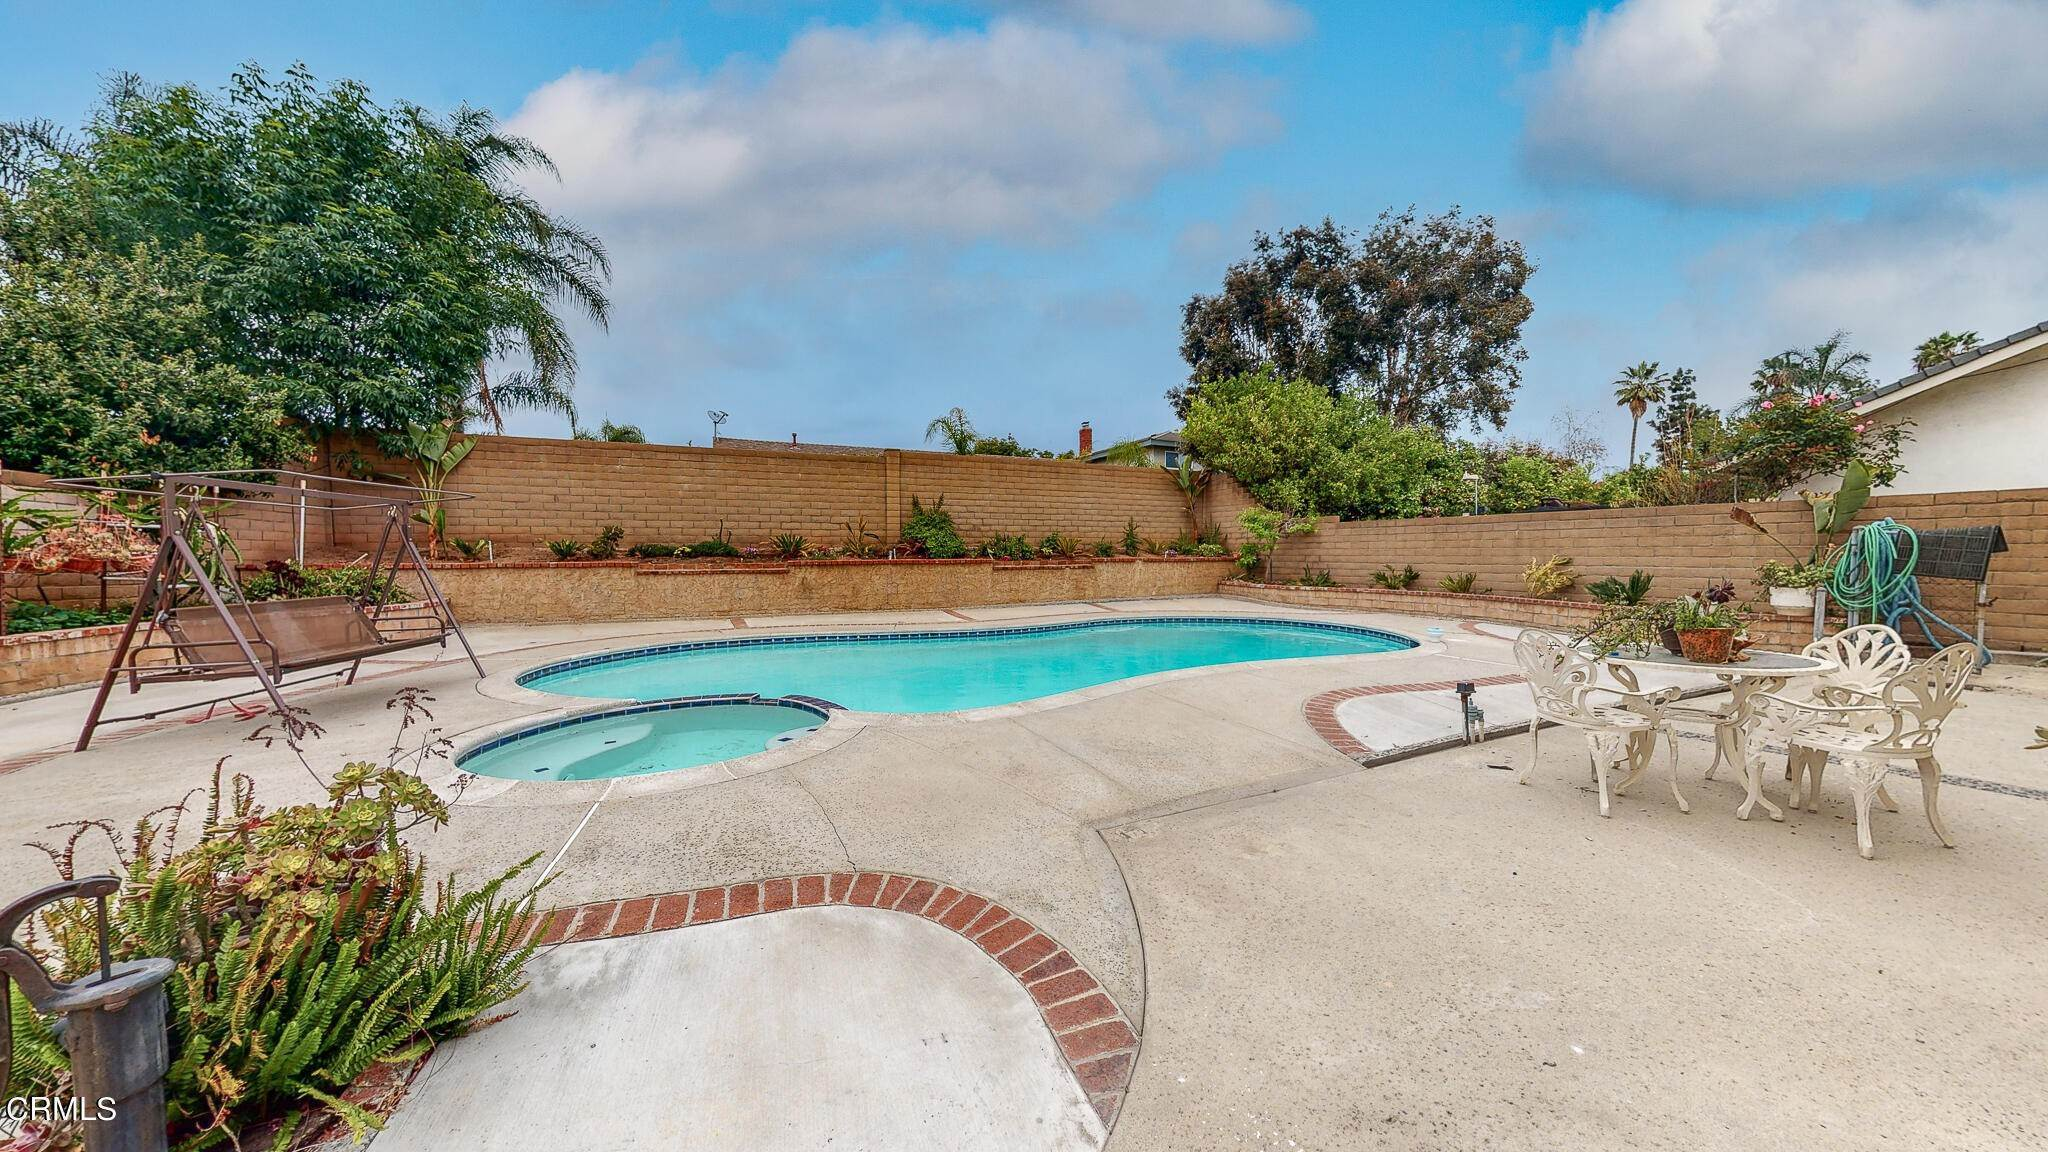 20. Single Family Homes for Sale at 1039 Alondra Circle La Verne, California 91750 United States